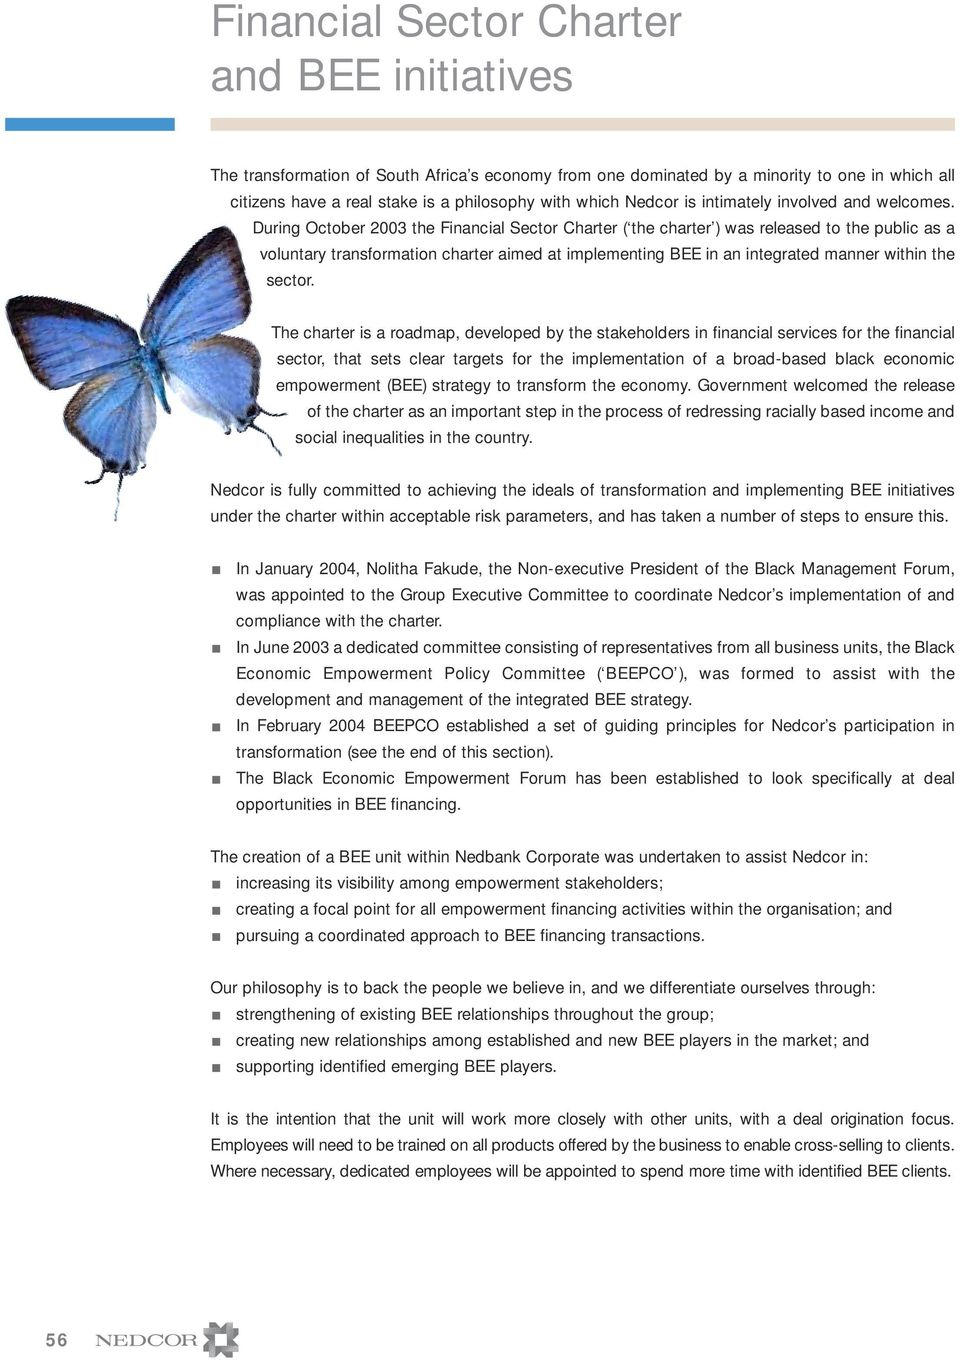 During October 2003 the Financial Sector Charter ( the charter ) was released to the public as a voluntary transformation charter aimed at implementing BEE in an integrated manner within the sector.